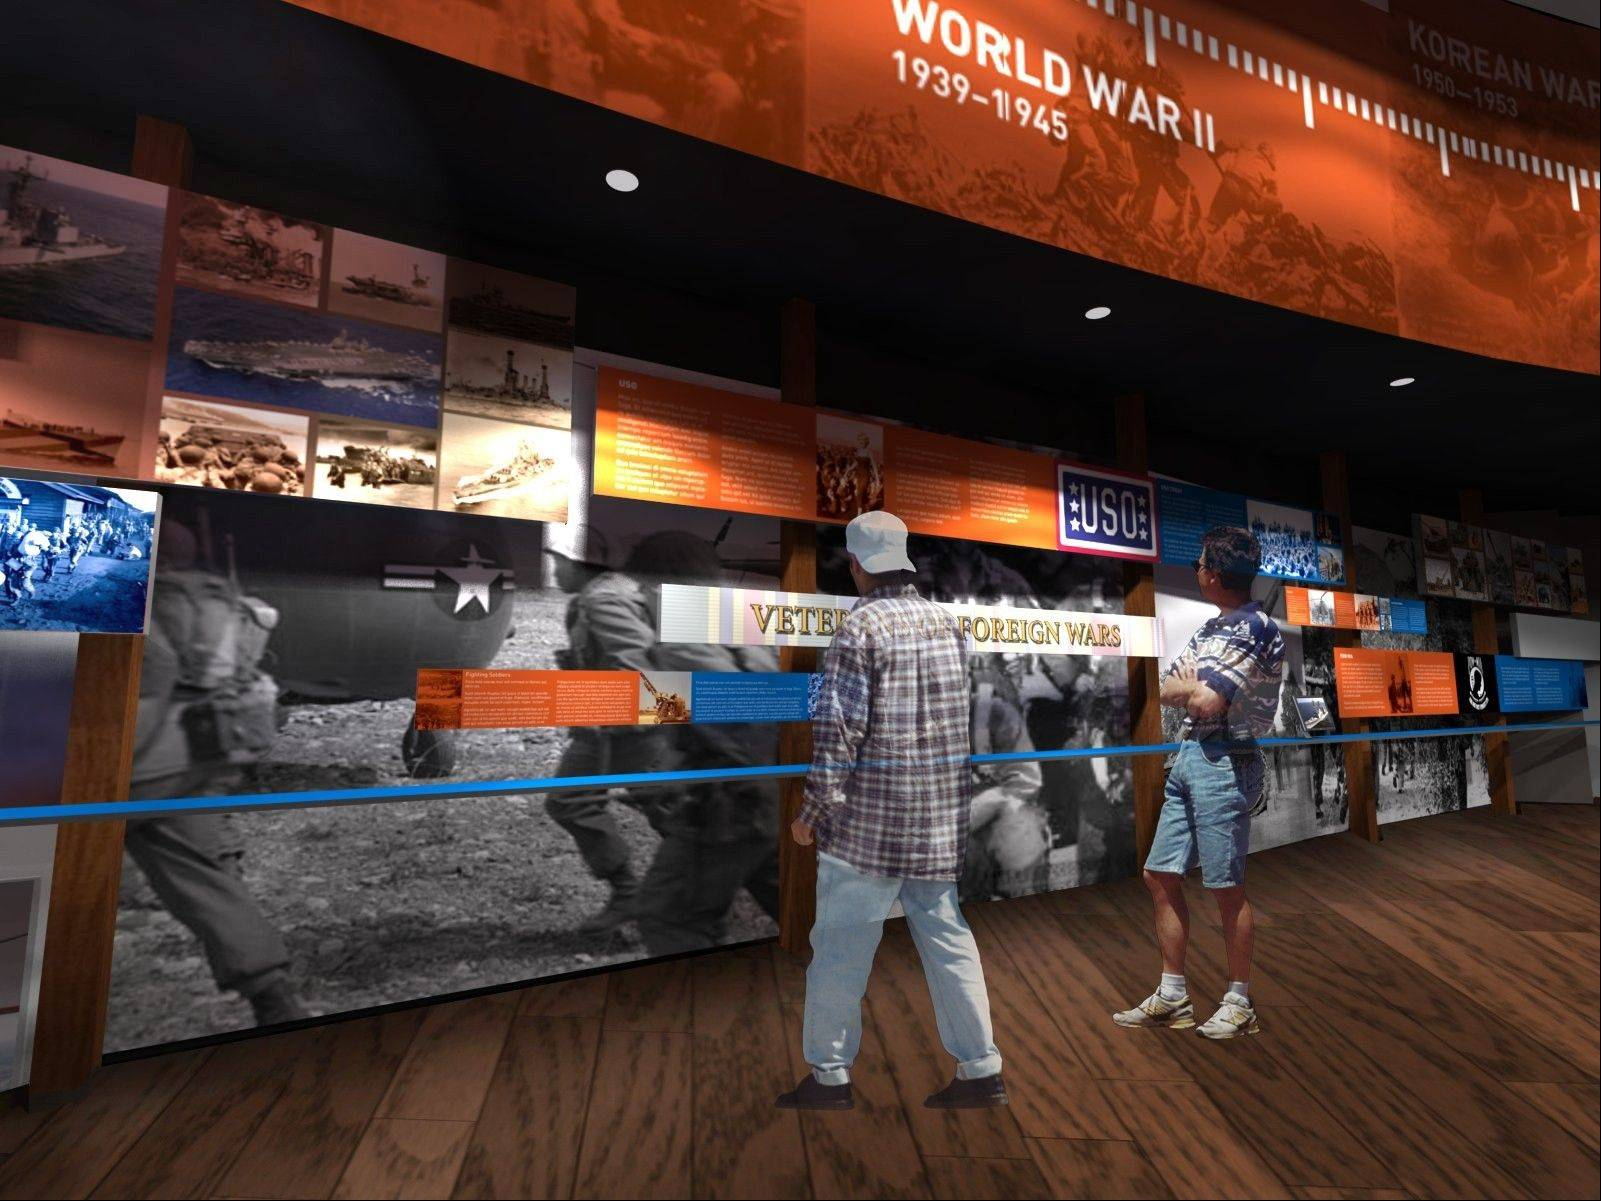 This is a view of what the interior of the proposed National Veterans Museum in Hoffman Estates might look like.